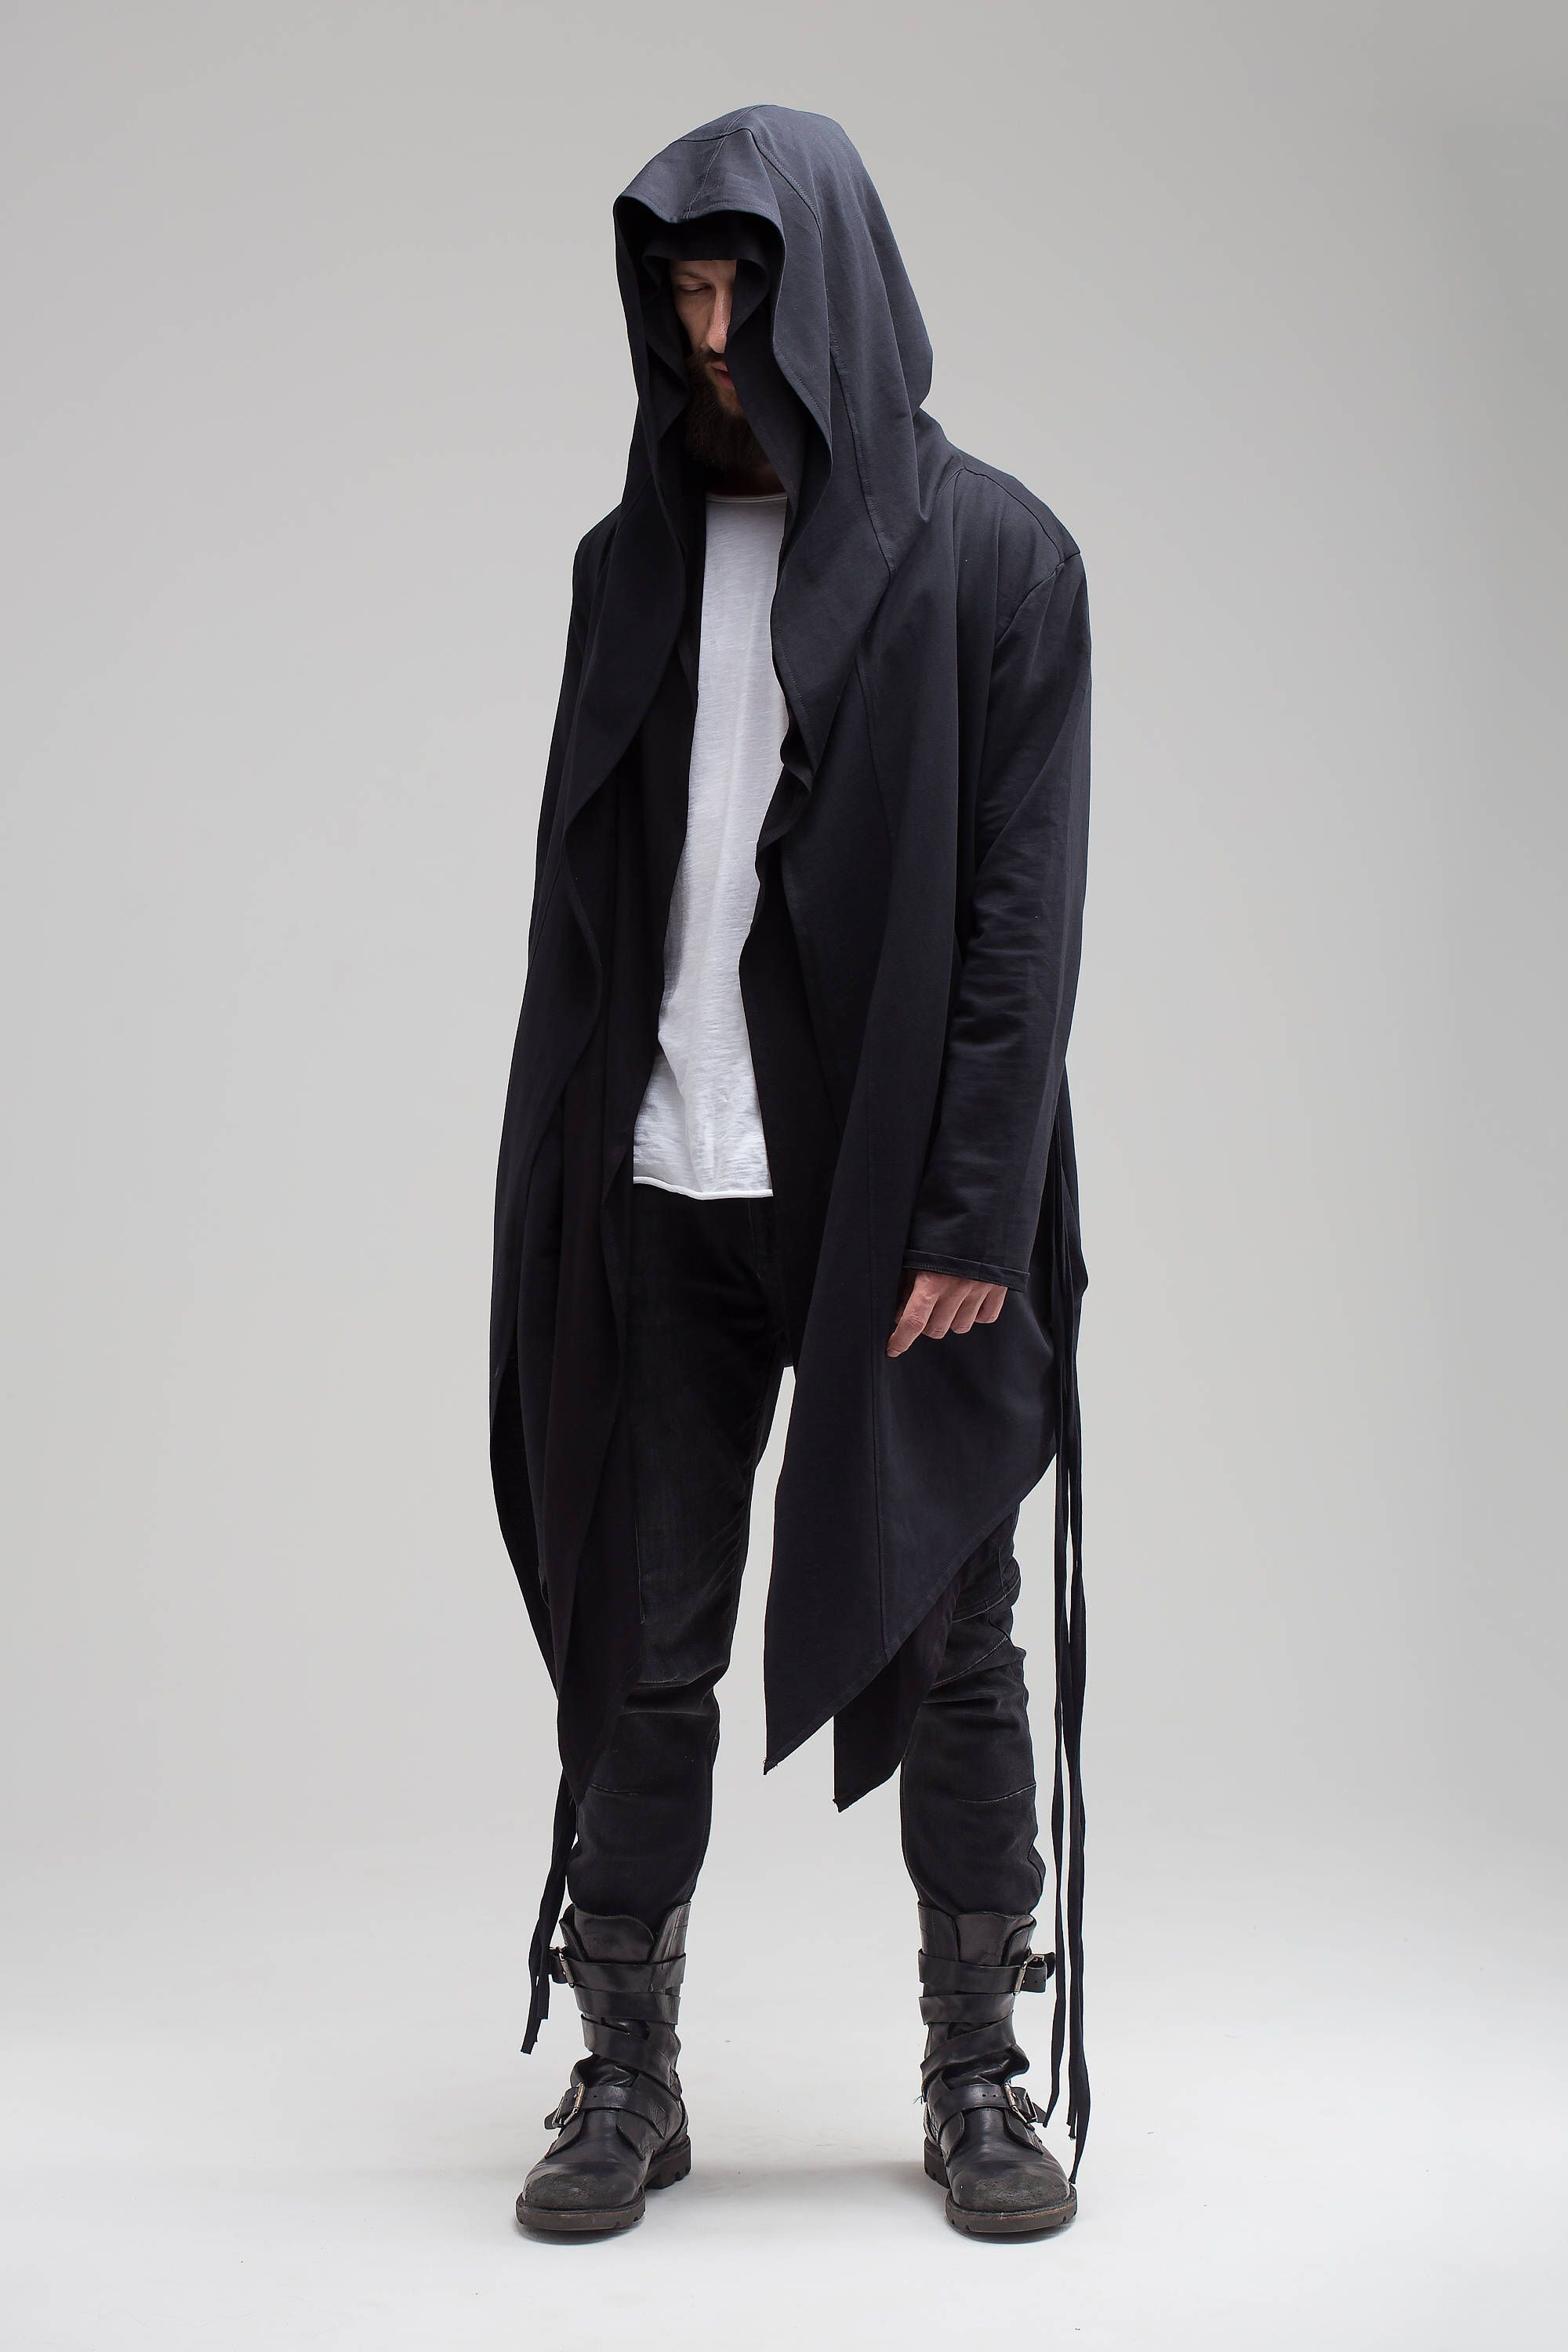 Avant-garde style inspiration for today  Assassin Creed Hoodie   Jedi Black Hoodie  Long Cardigan Black Cyberpunk Hoodie Punk Gift for Man Unique Gift 4fd0ae39ac